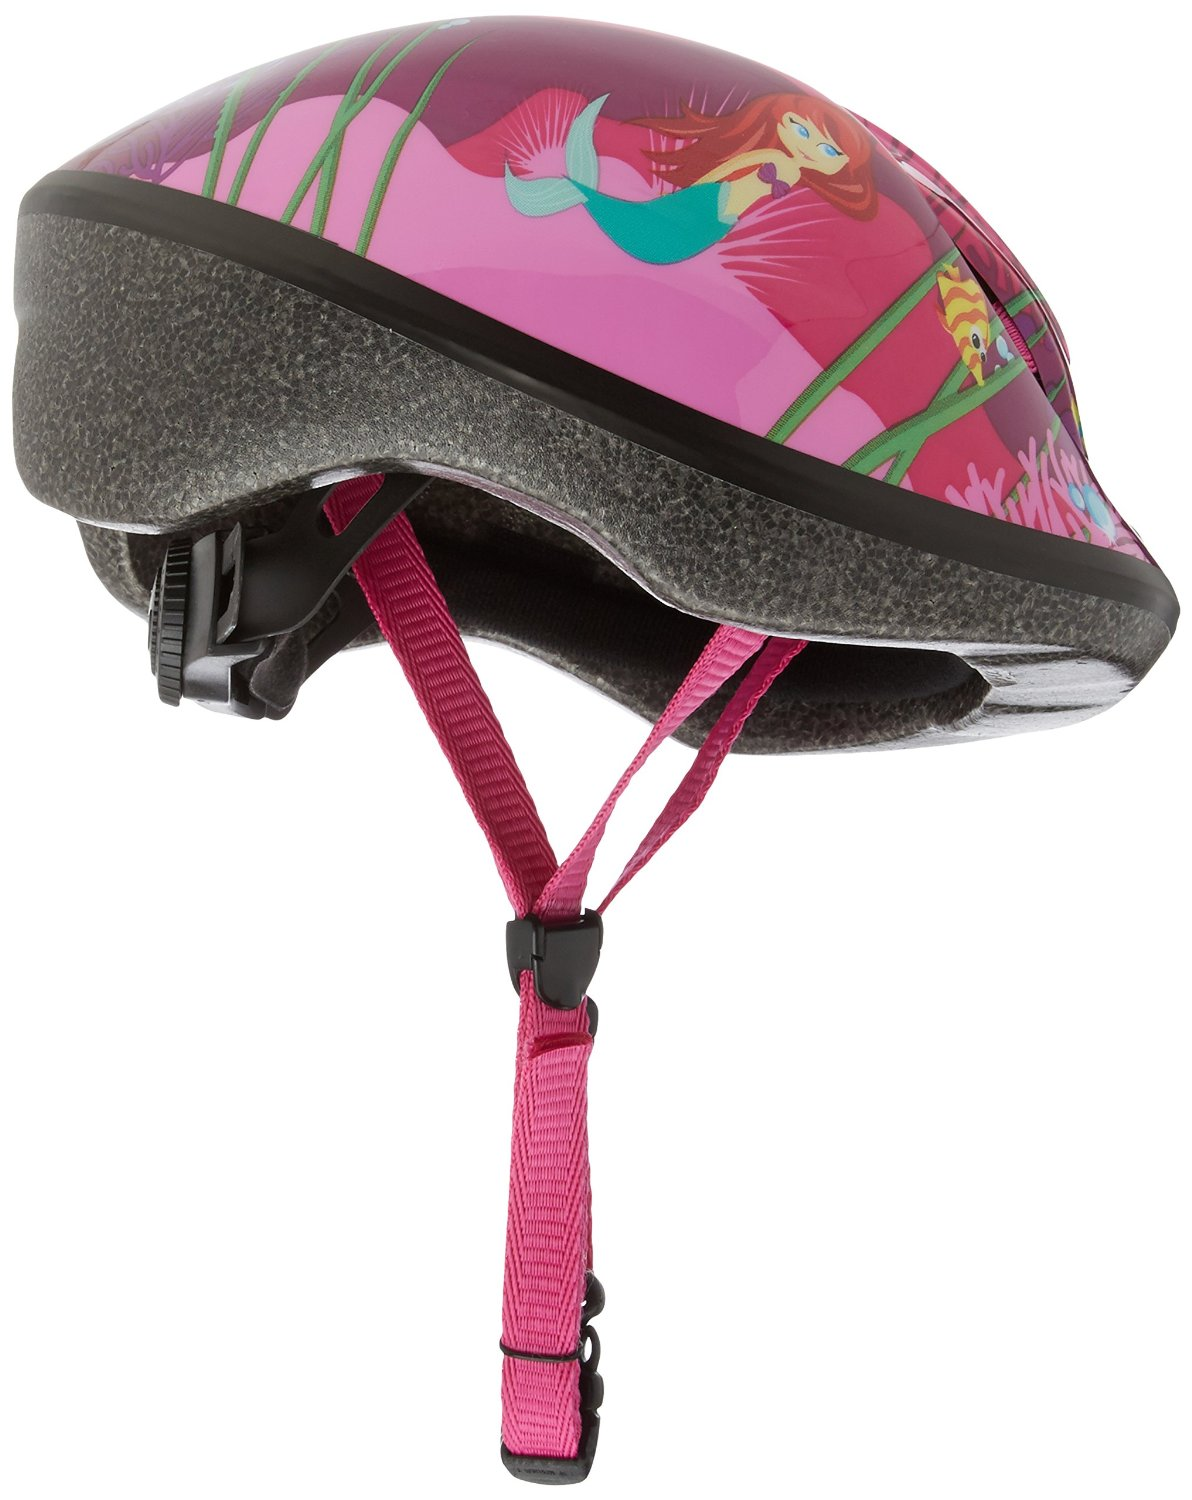 Little Mermaid Bicycle Helmets